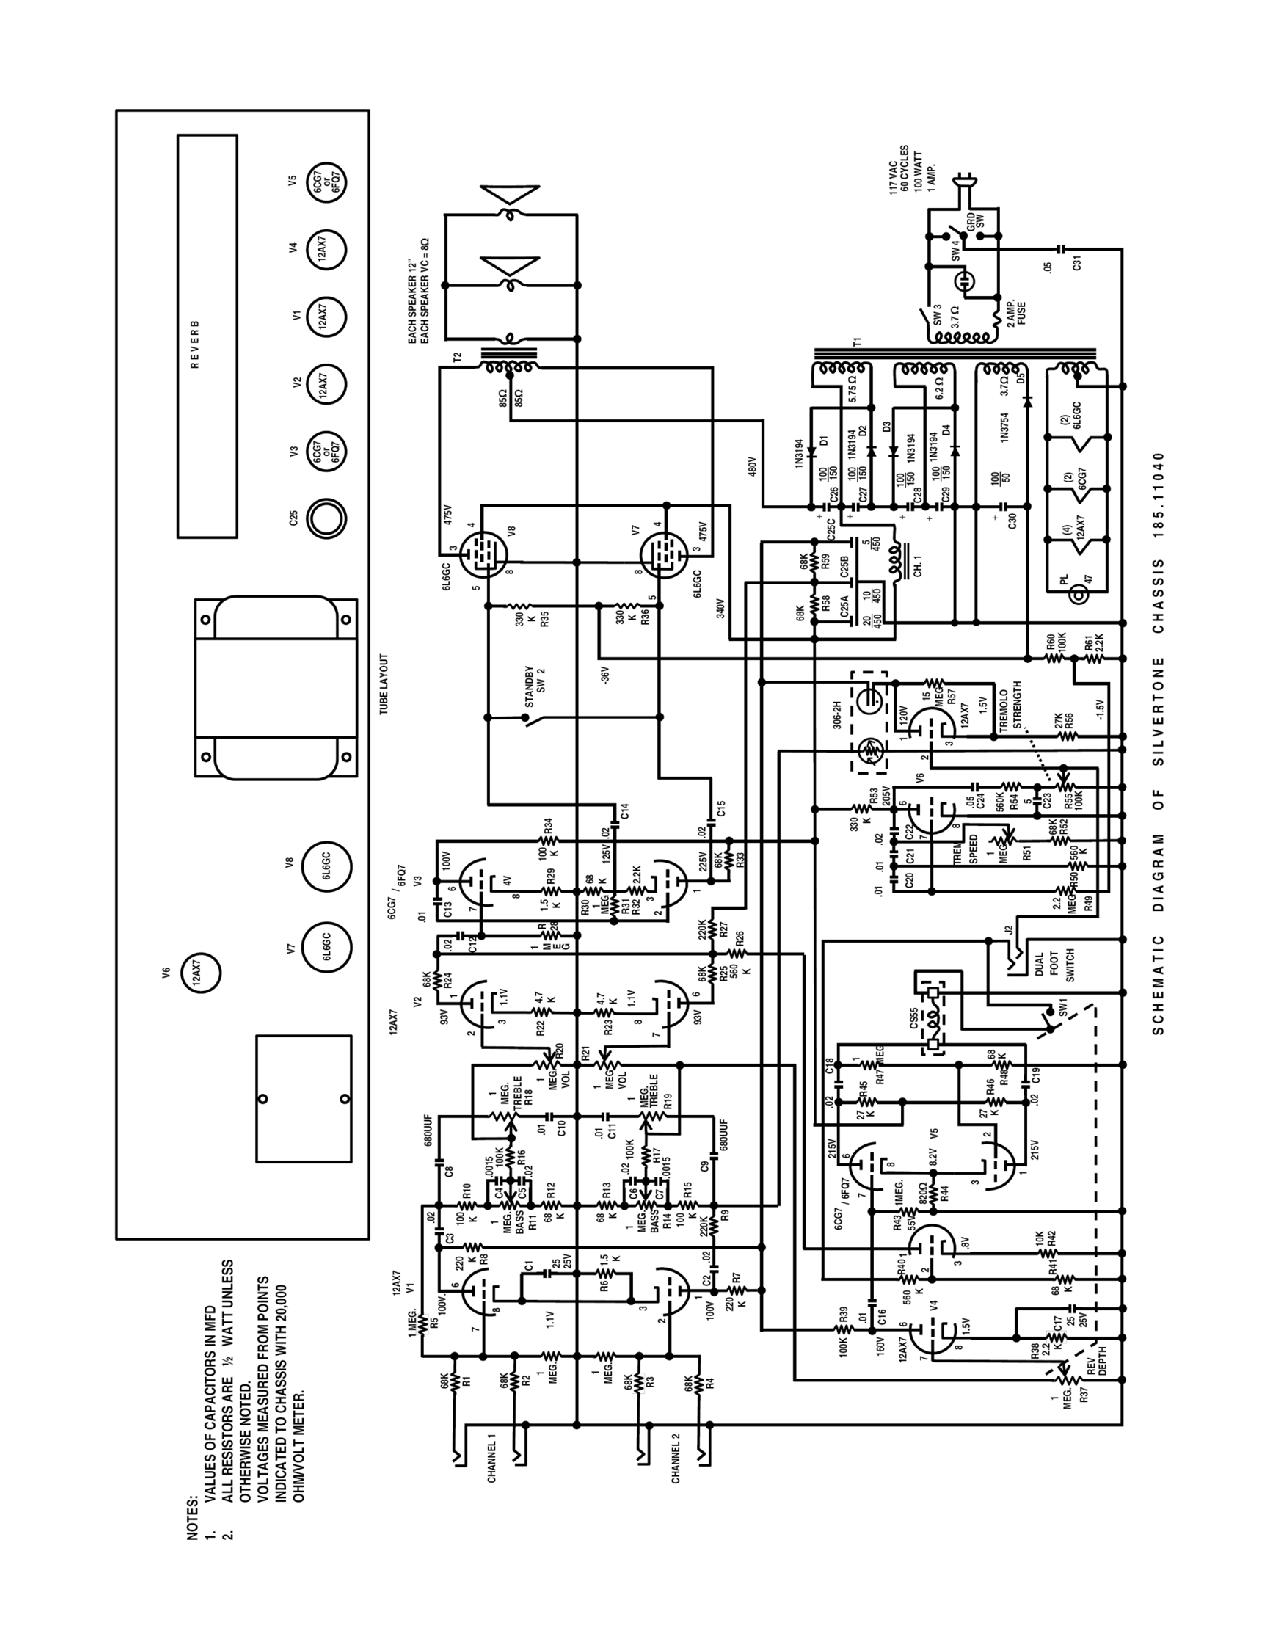 silvertone world amplifiers 1960s model 1484 schematic Jbl Wiring Diagram all four pages zipped Pressure Switch Wiring Diagram